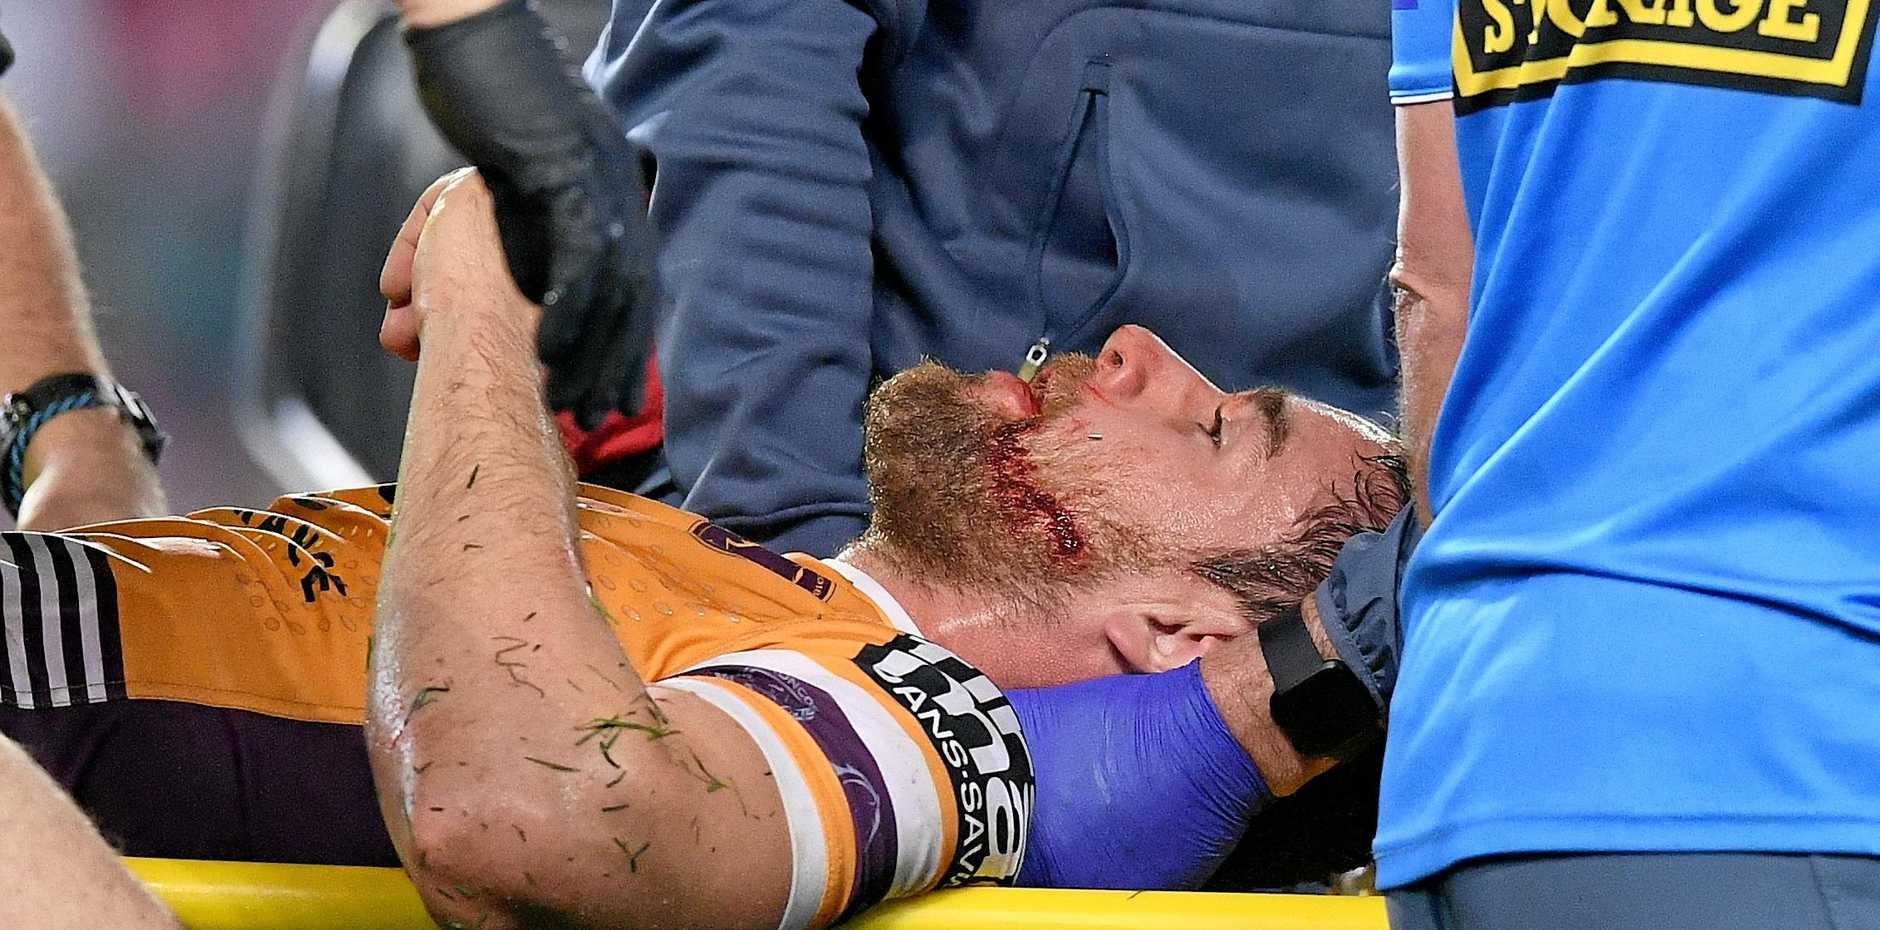 The Broncos' Andrew McCullough is stretchered from the field after a hit from the Roosters' Dylan Napa in round 24. Picture: Dan Himbrechts/AAP